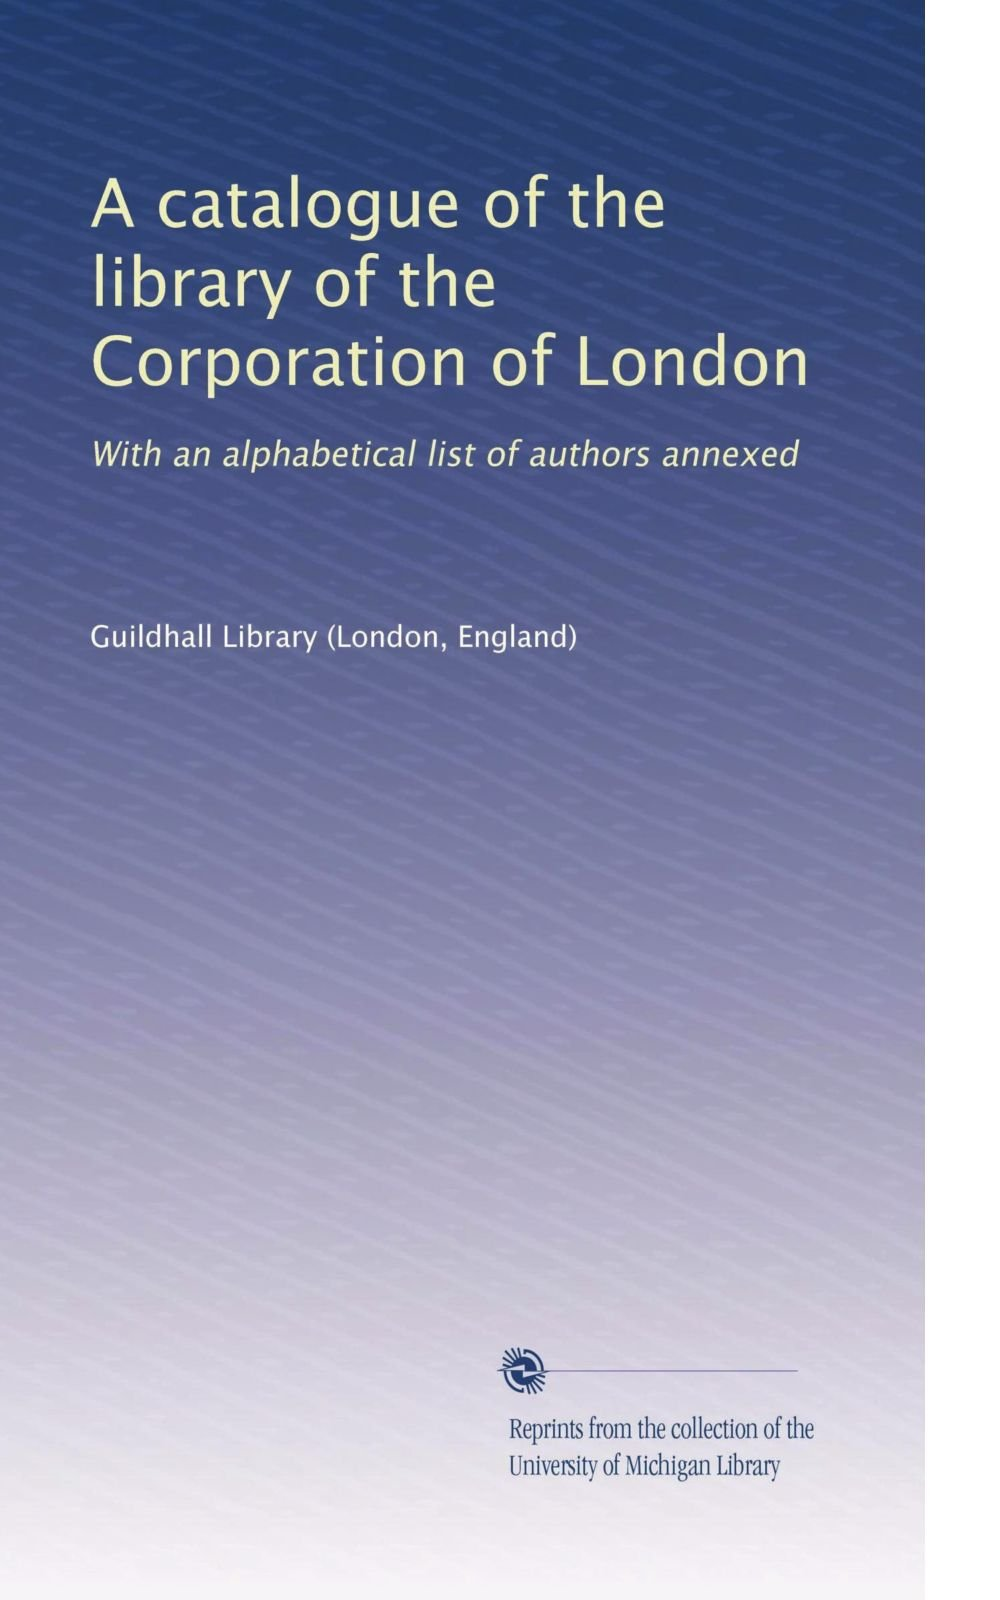 Download A catalogue of the library of the Corporation of London: With an alphabetical list of authors annexed PDF